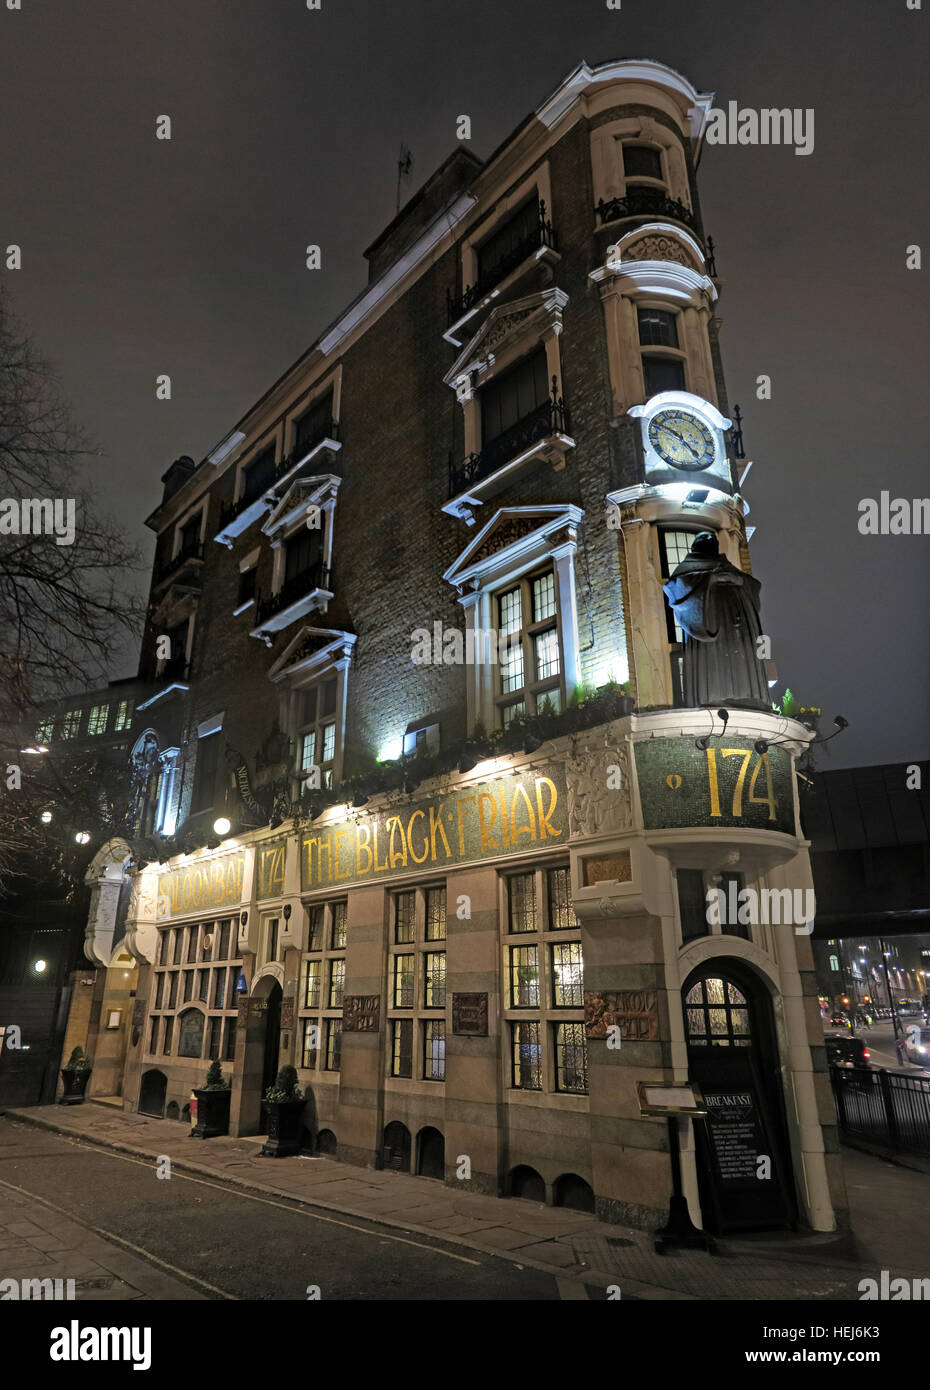 The Black Friar, Blackfriars, London, England, UK at night,pano - Stock Image